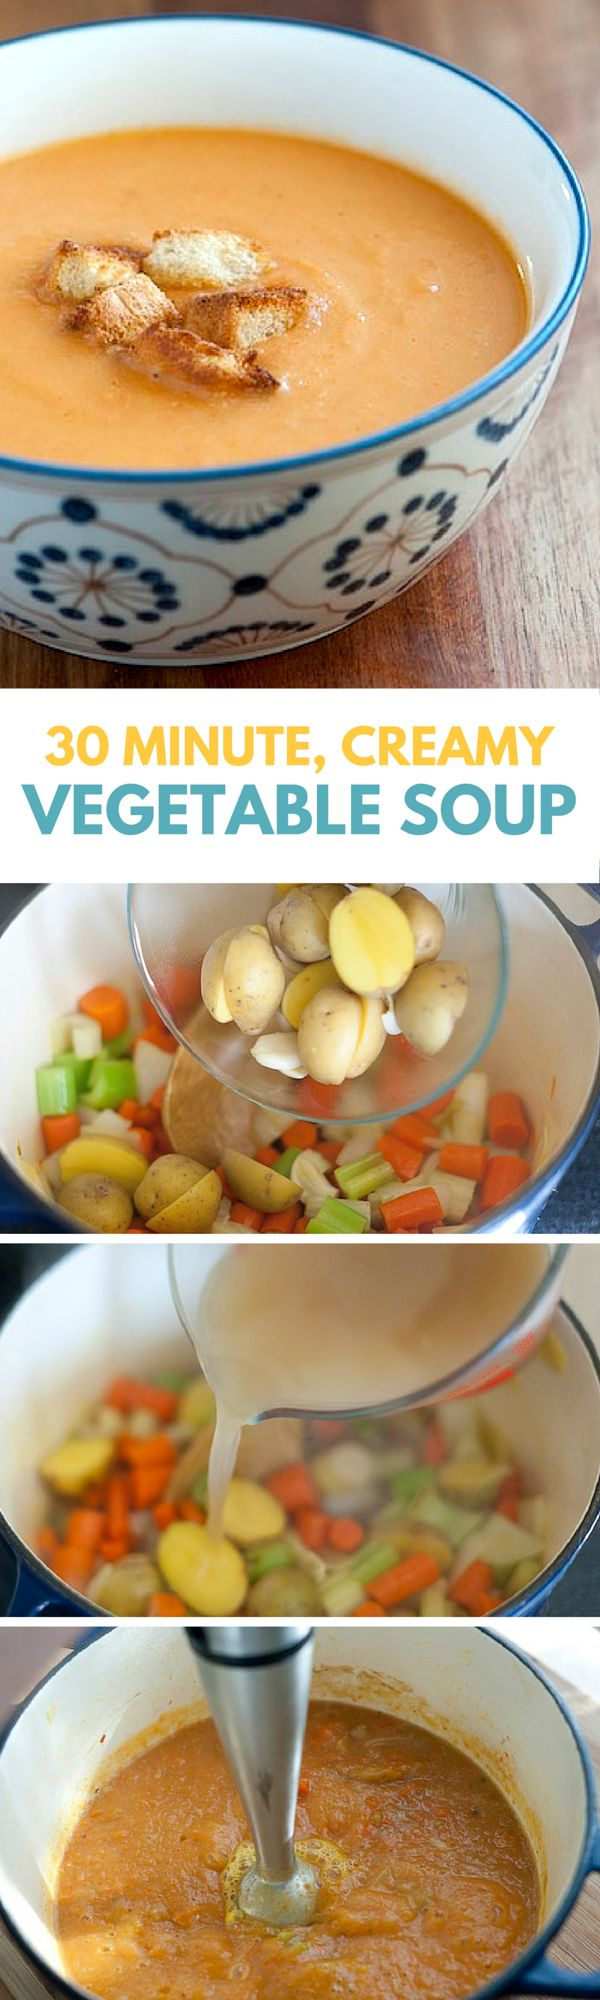 You only need 30 Minutes to make the easy and delicious Vegetable Soup!